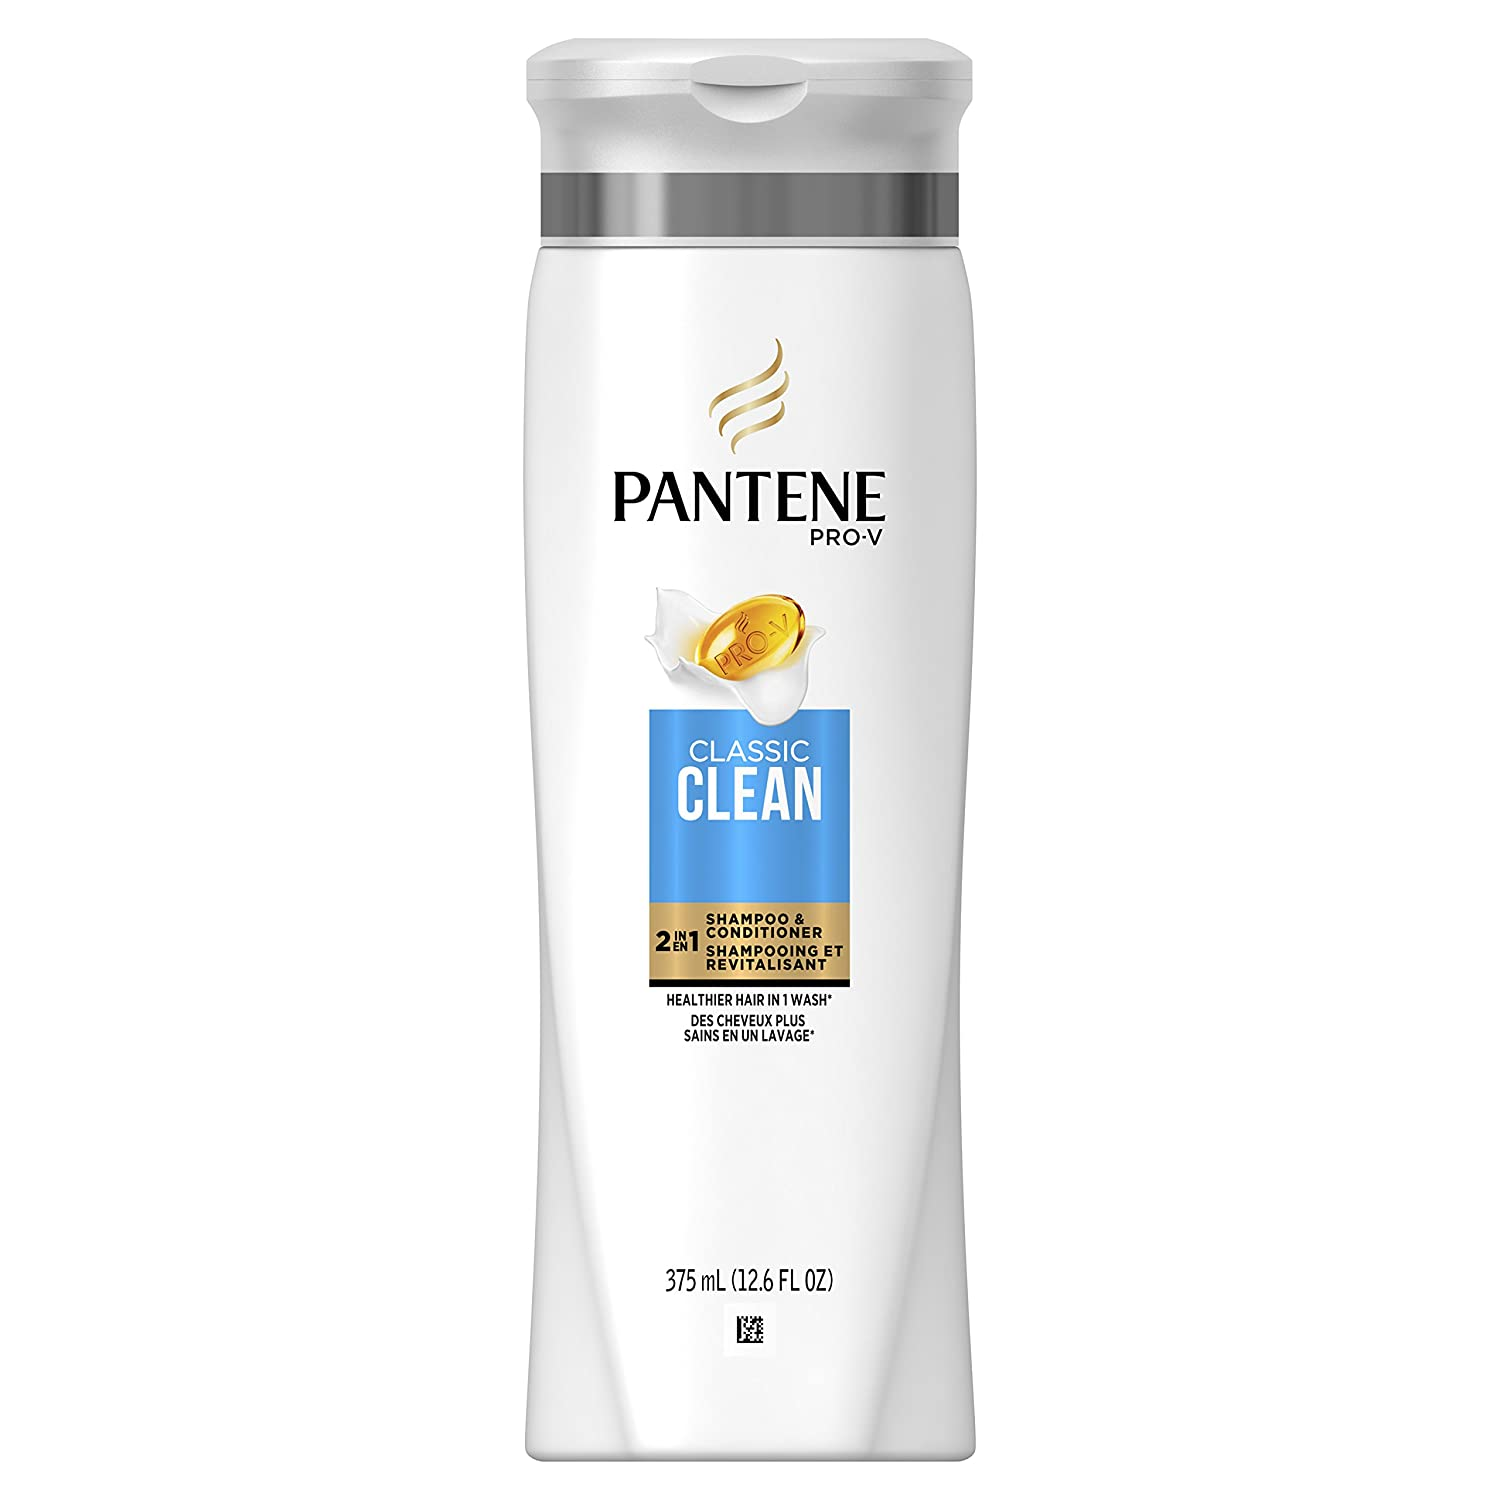 Pantene Pro-V Classic Clean Shampoo, 375 mL, packaging may vary